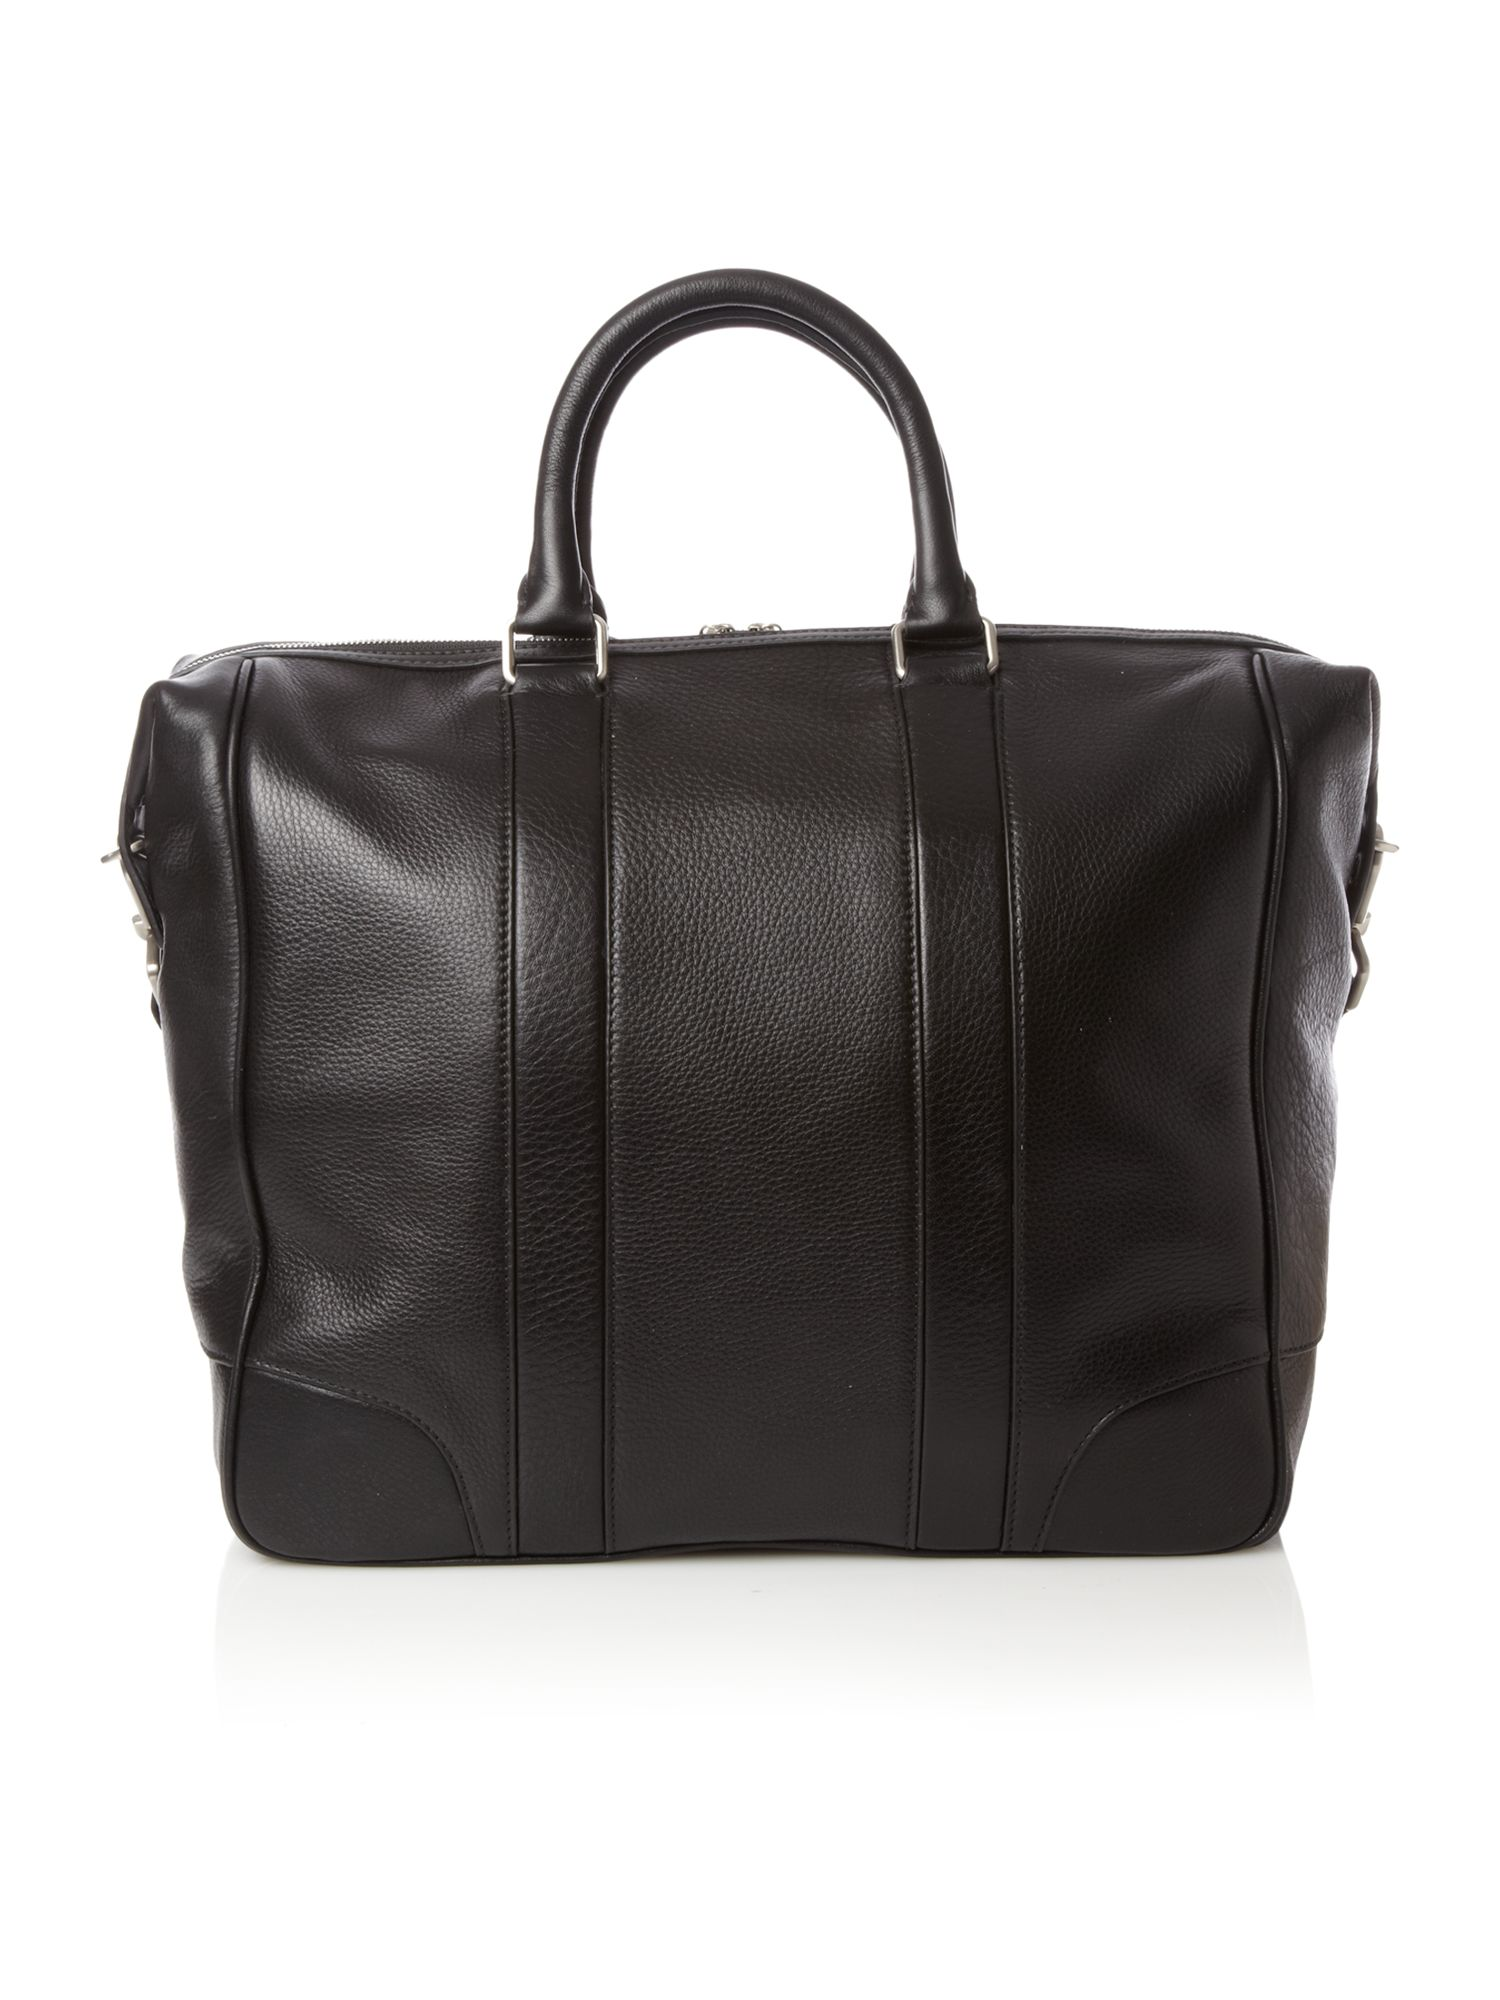 Hugo Boss Leather tote bag